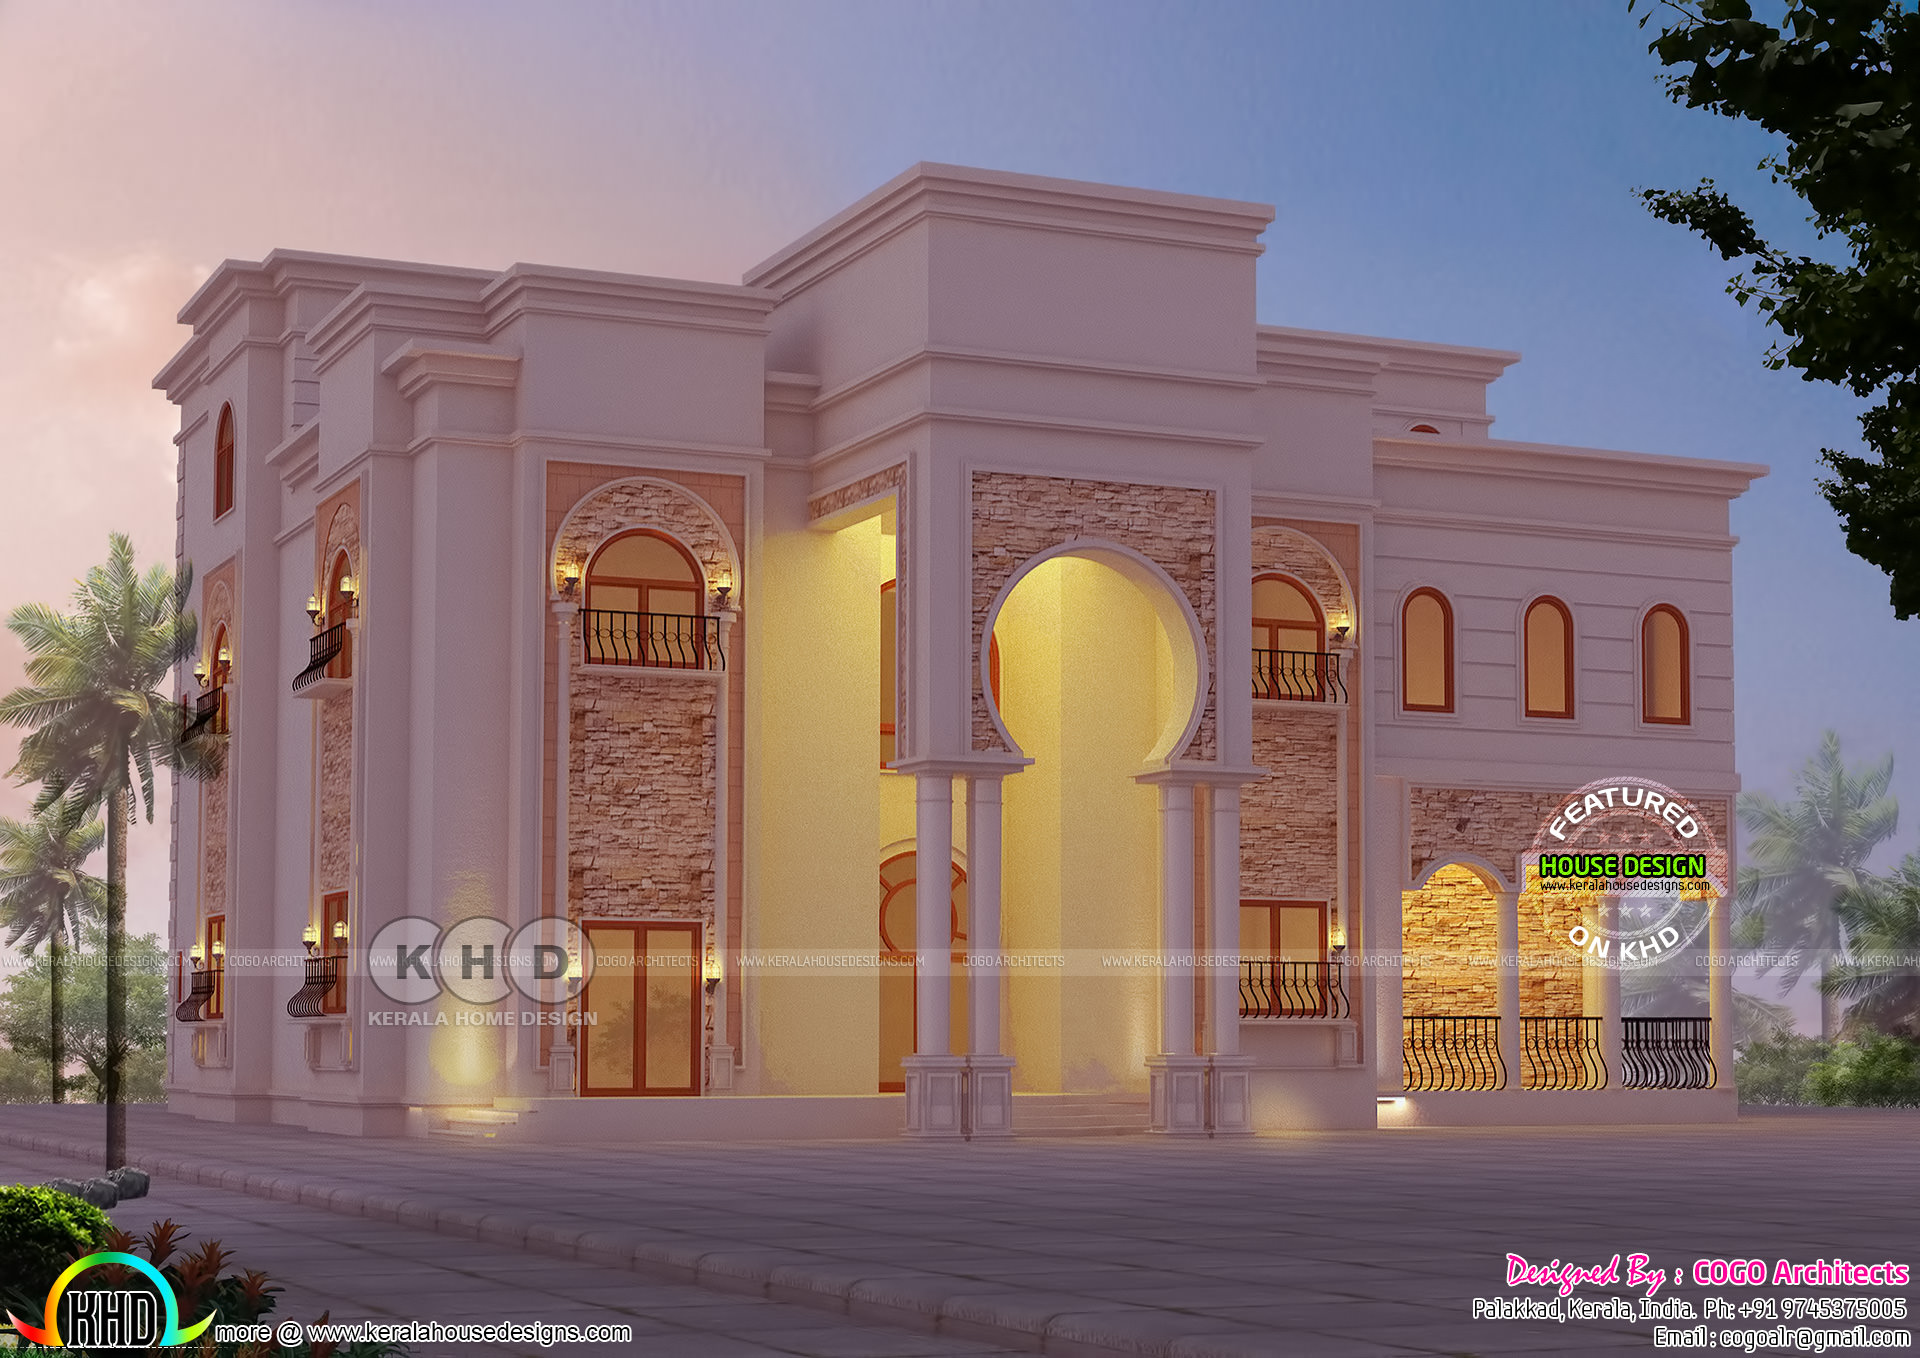 Arab Style House Architecture In Kerala Kerala Home Design And Floor Plans 8000 Houses